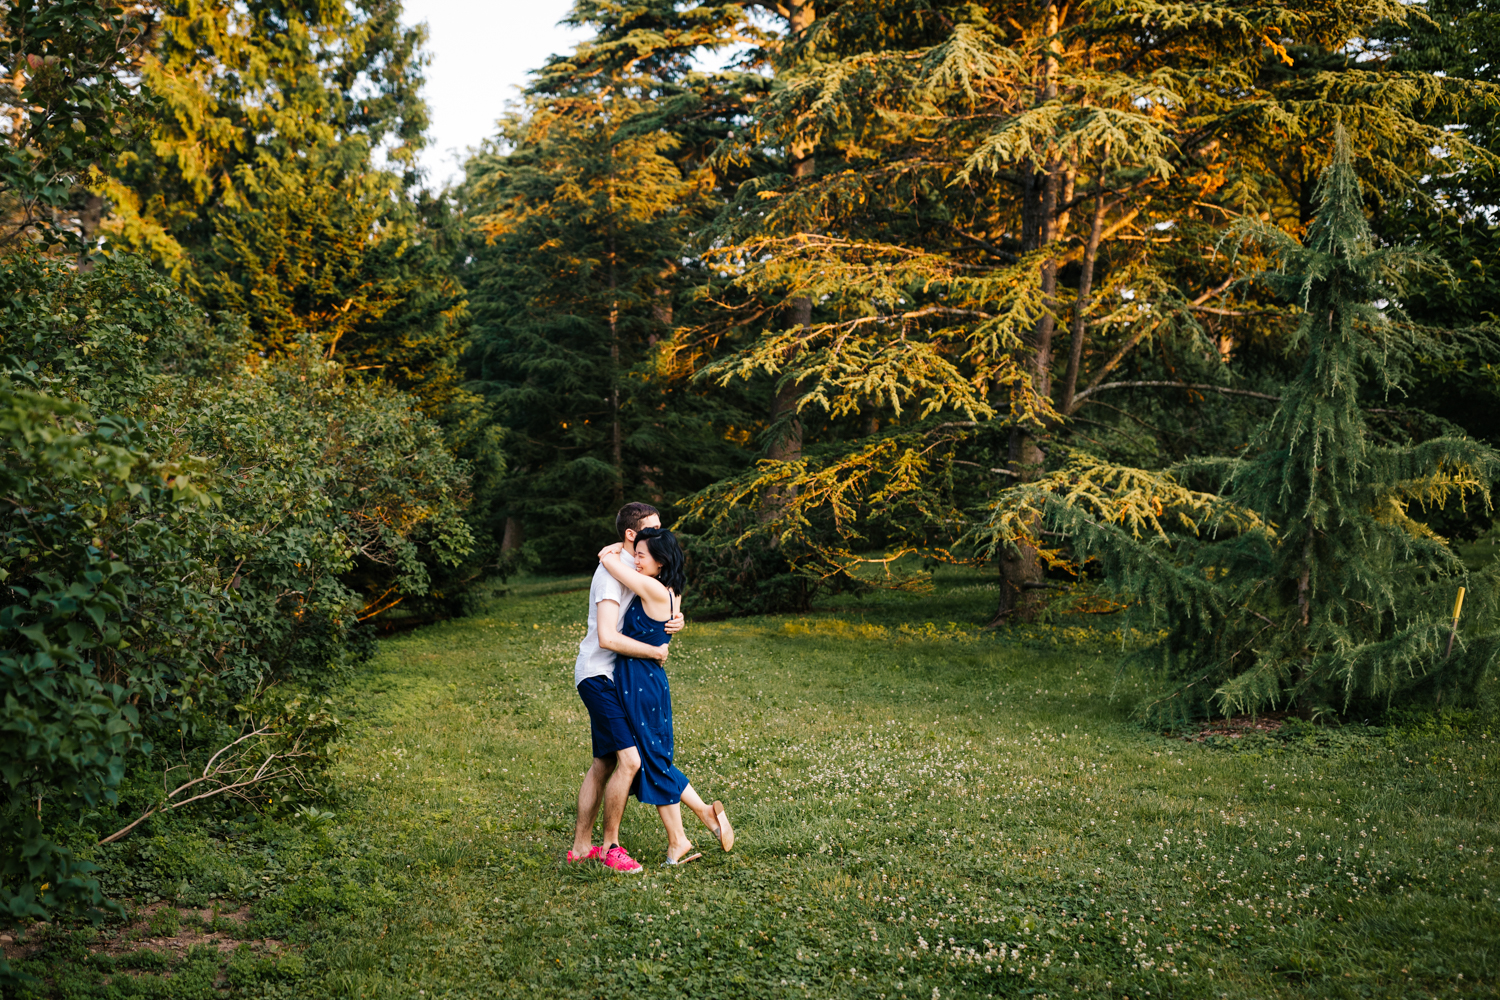 arnold-arboretum-engagement-harvard-boston-massachusetts-andrea-van-orsouw-natural-adventurous-fun-photography-photographer.jpg